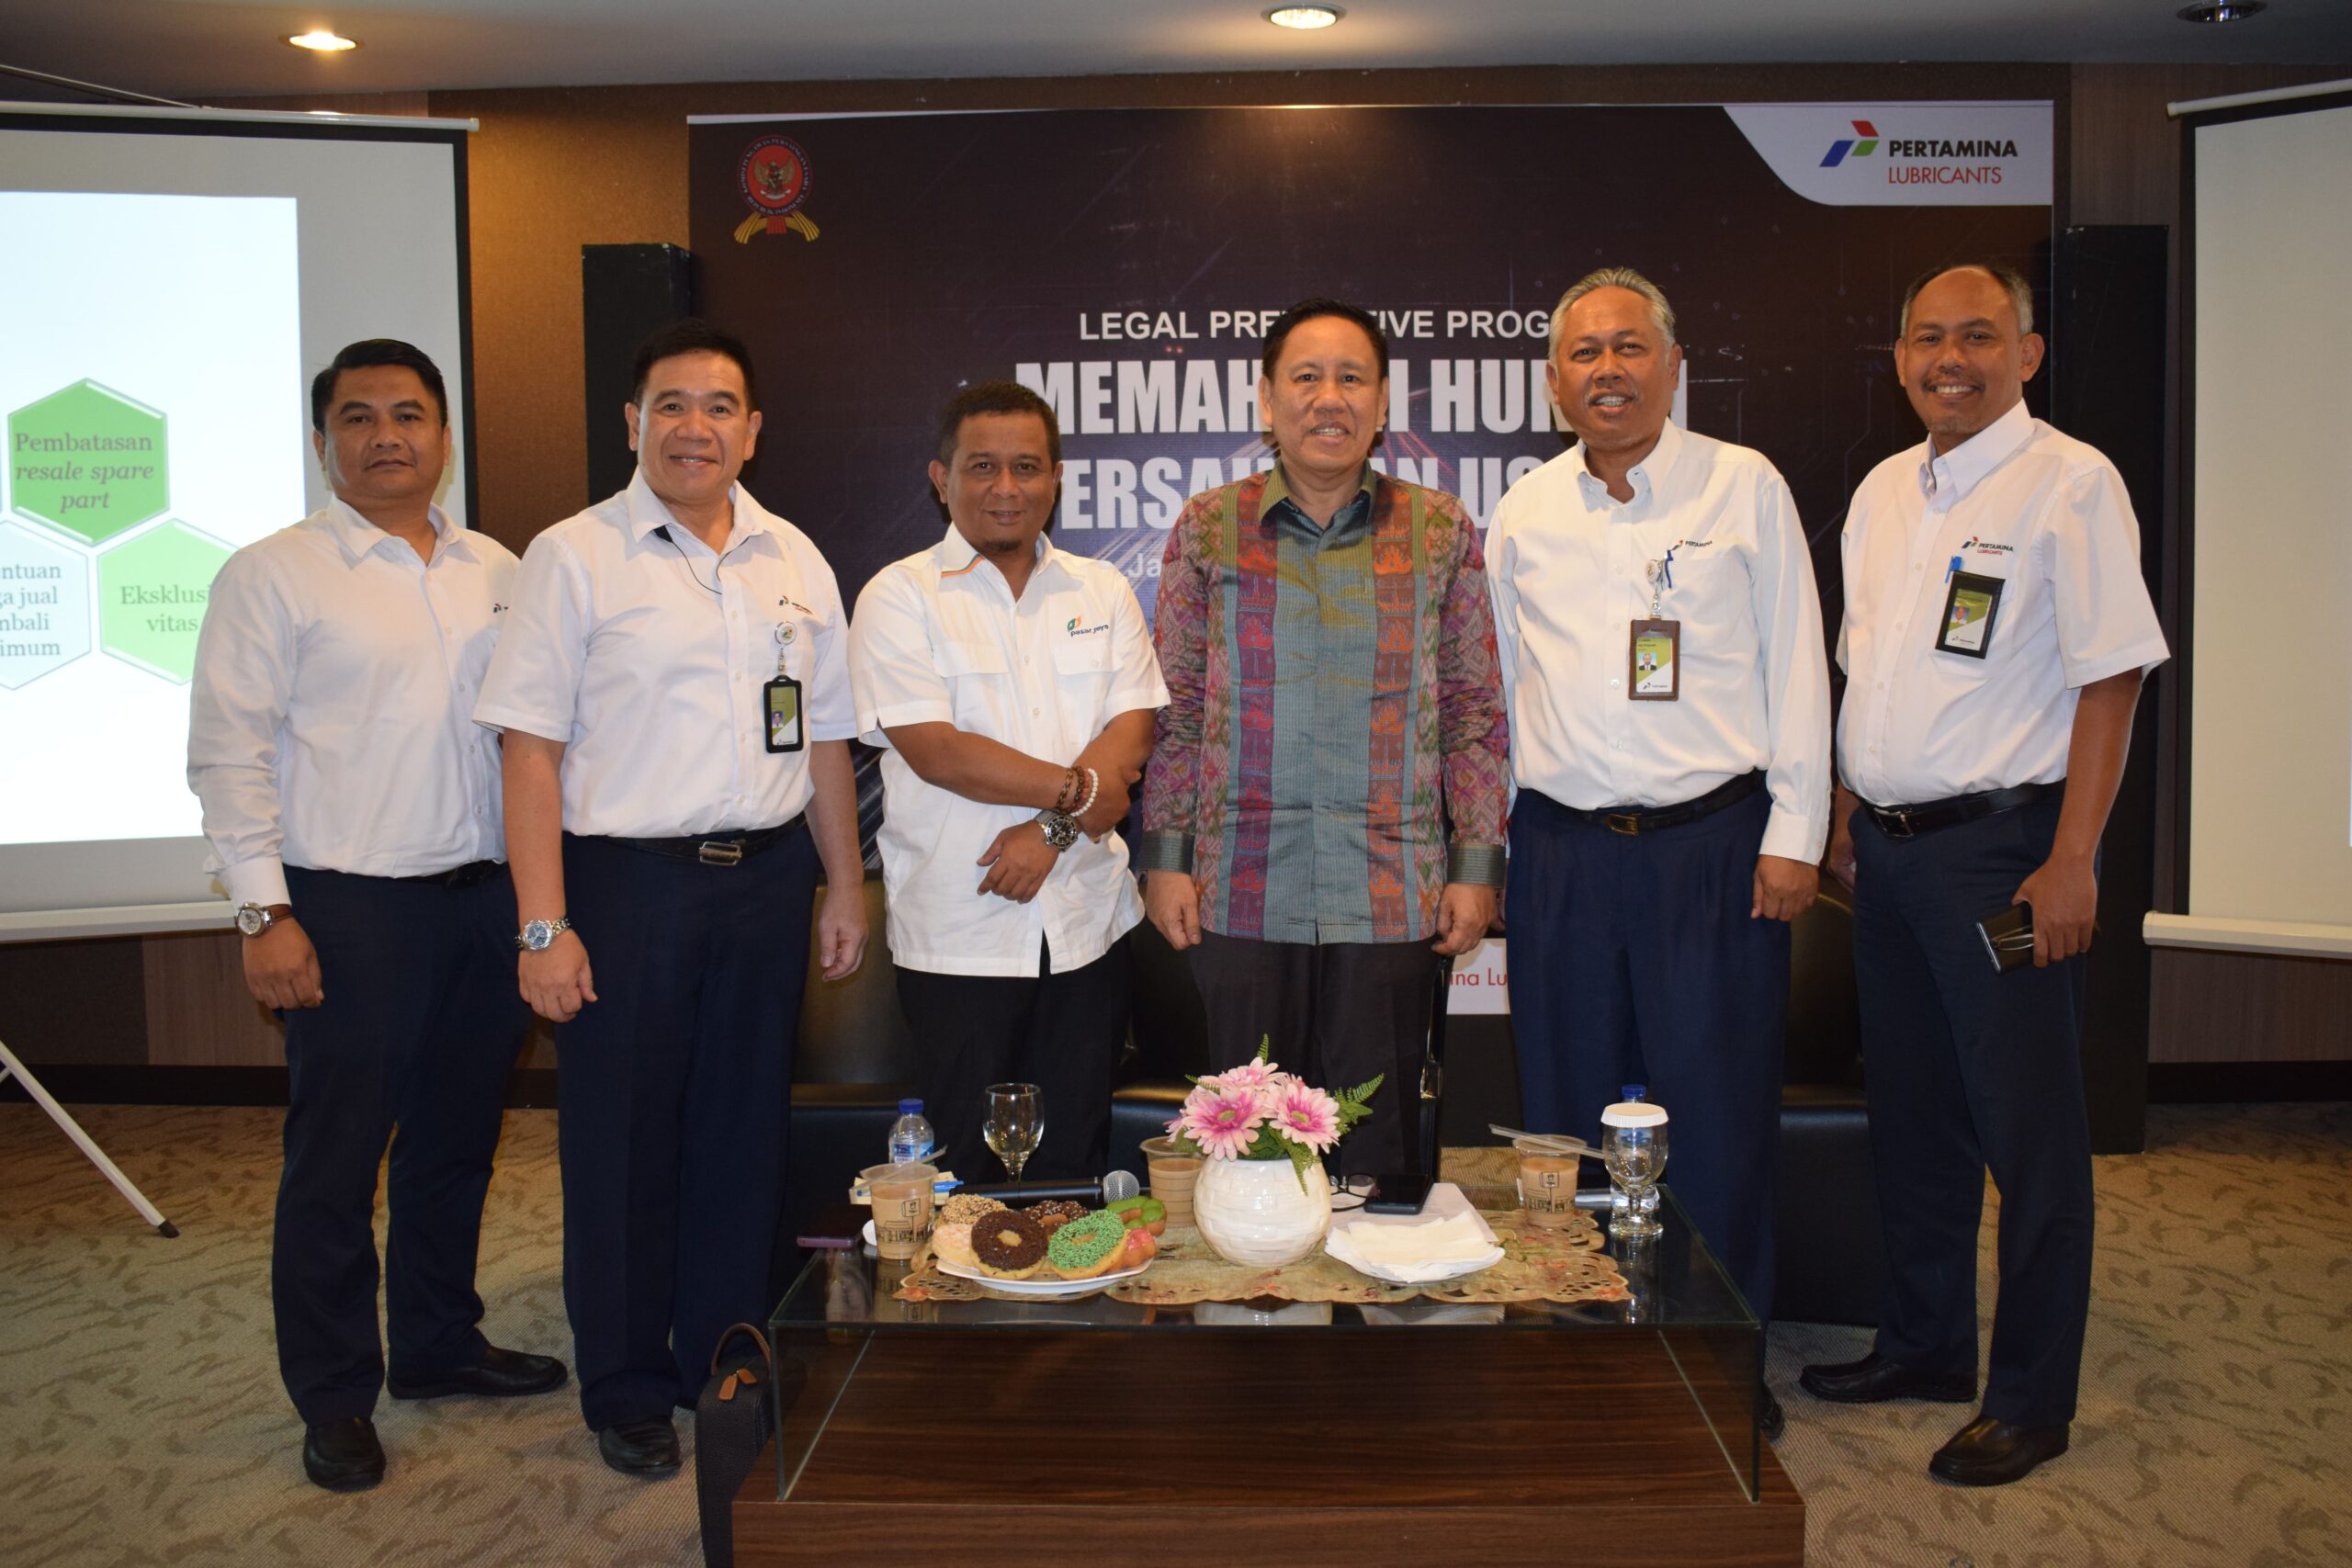 Seminar Pertamina Lubricants, 22 April 2019